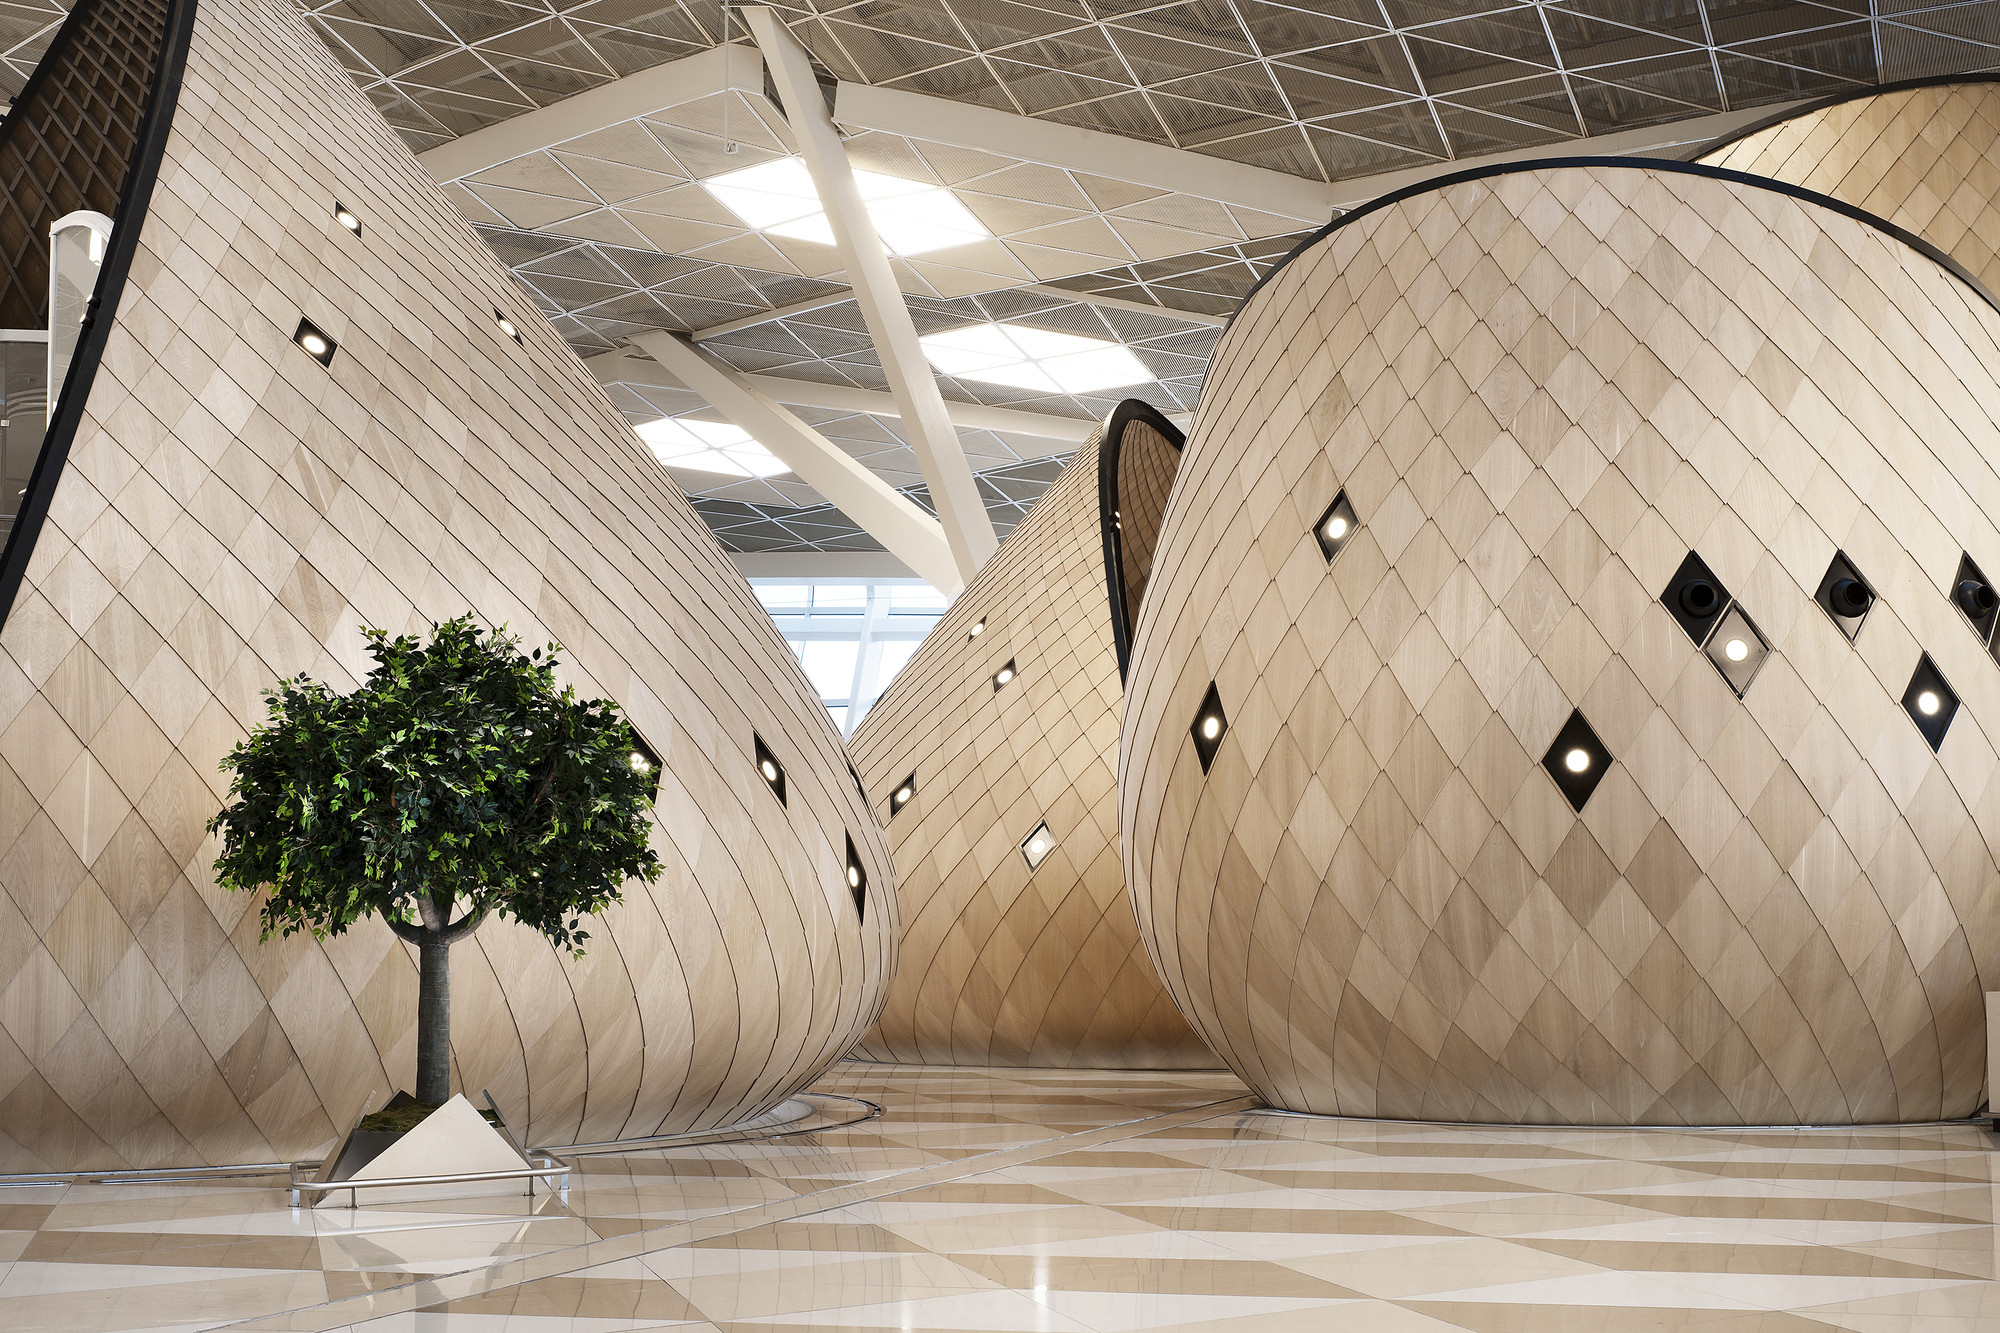 Heydar Aliyev International Airport Baku  /  Autoban, © Kerem Sanliman